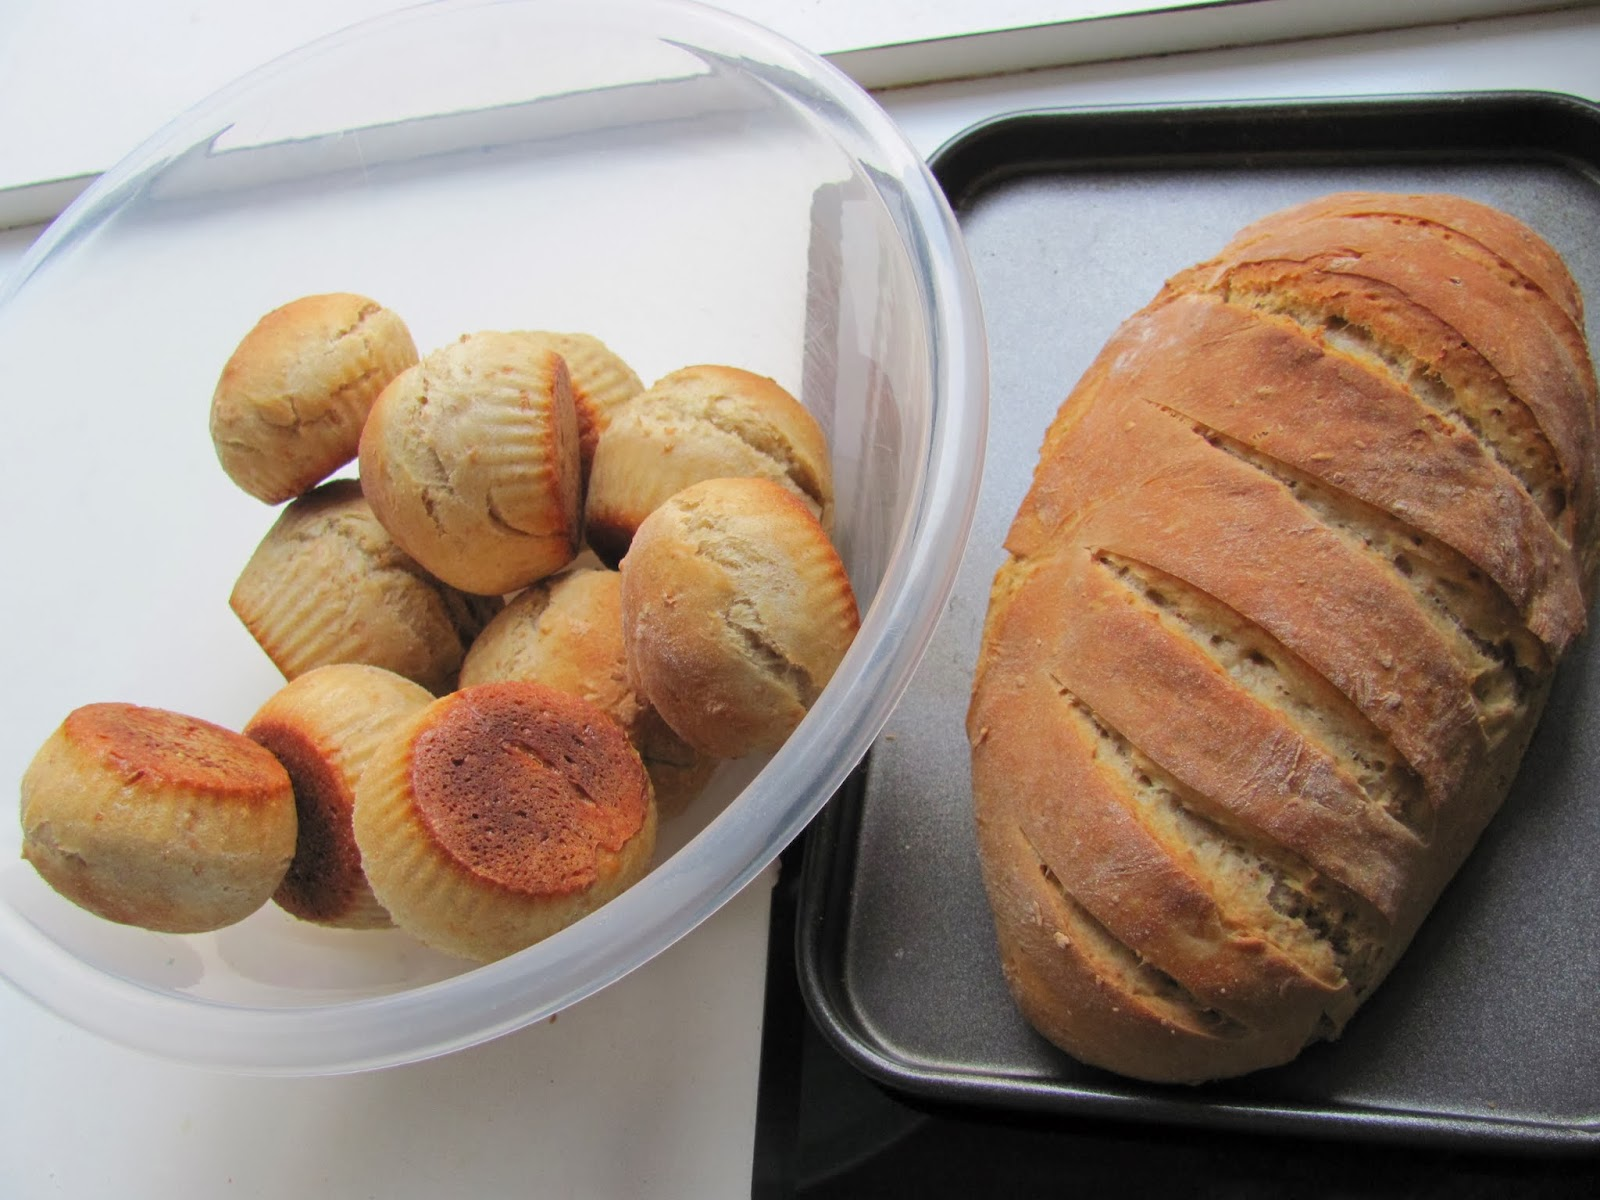 A loaf of bread and 12 rolls are ready in Dublin Ireland Thanksgiving 2013